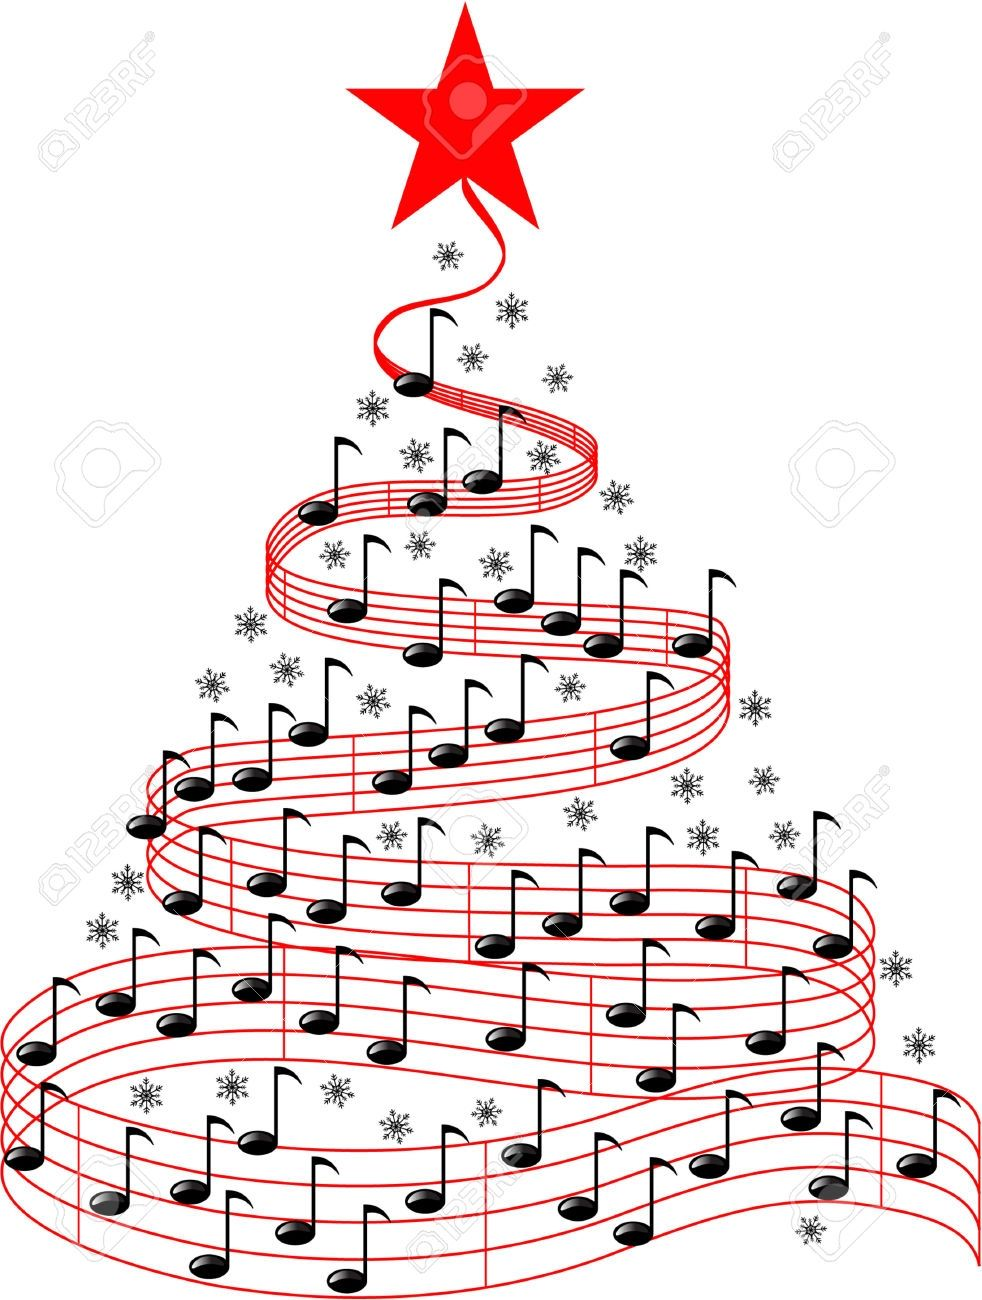 New Christmas Music Clipart Design.